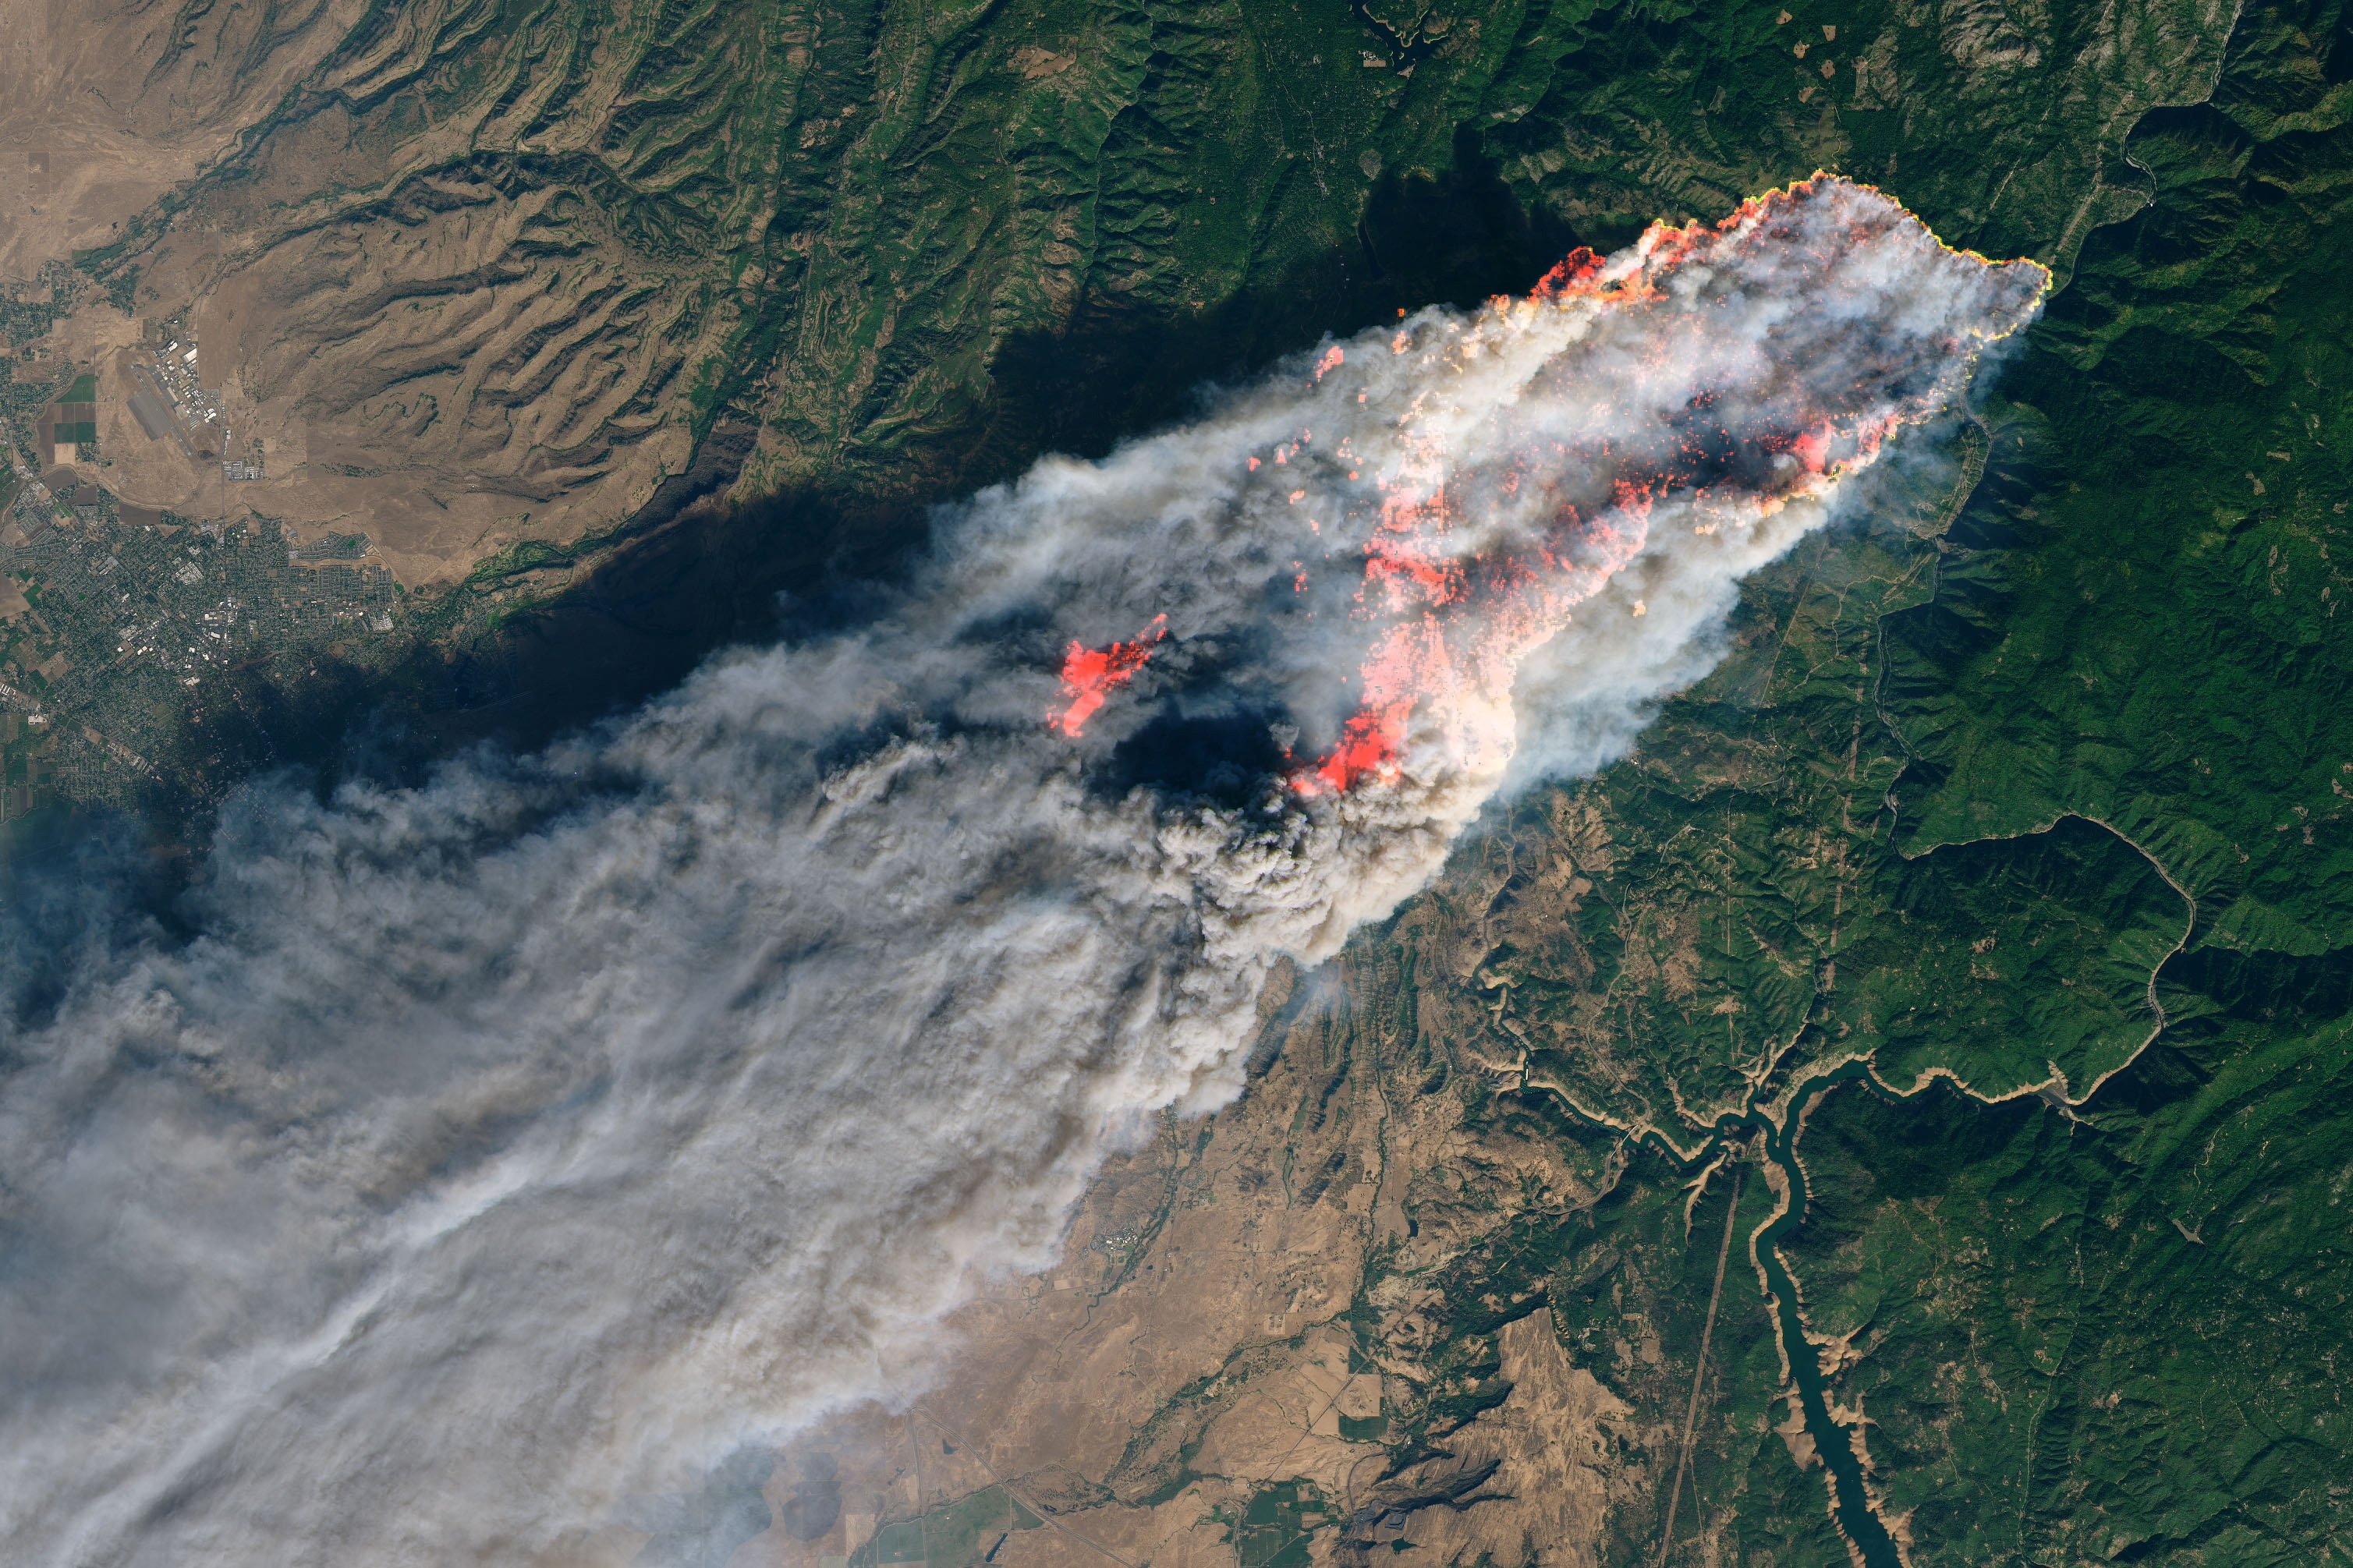 NASA's Operational Land Imager satellite image of Camp Fire burning near Paradise